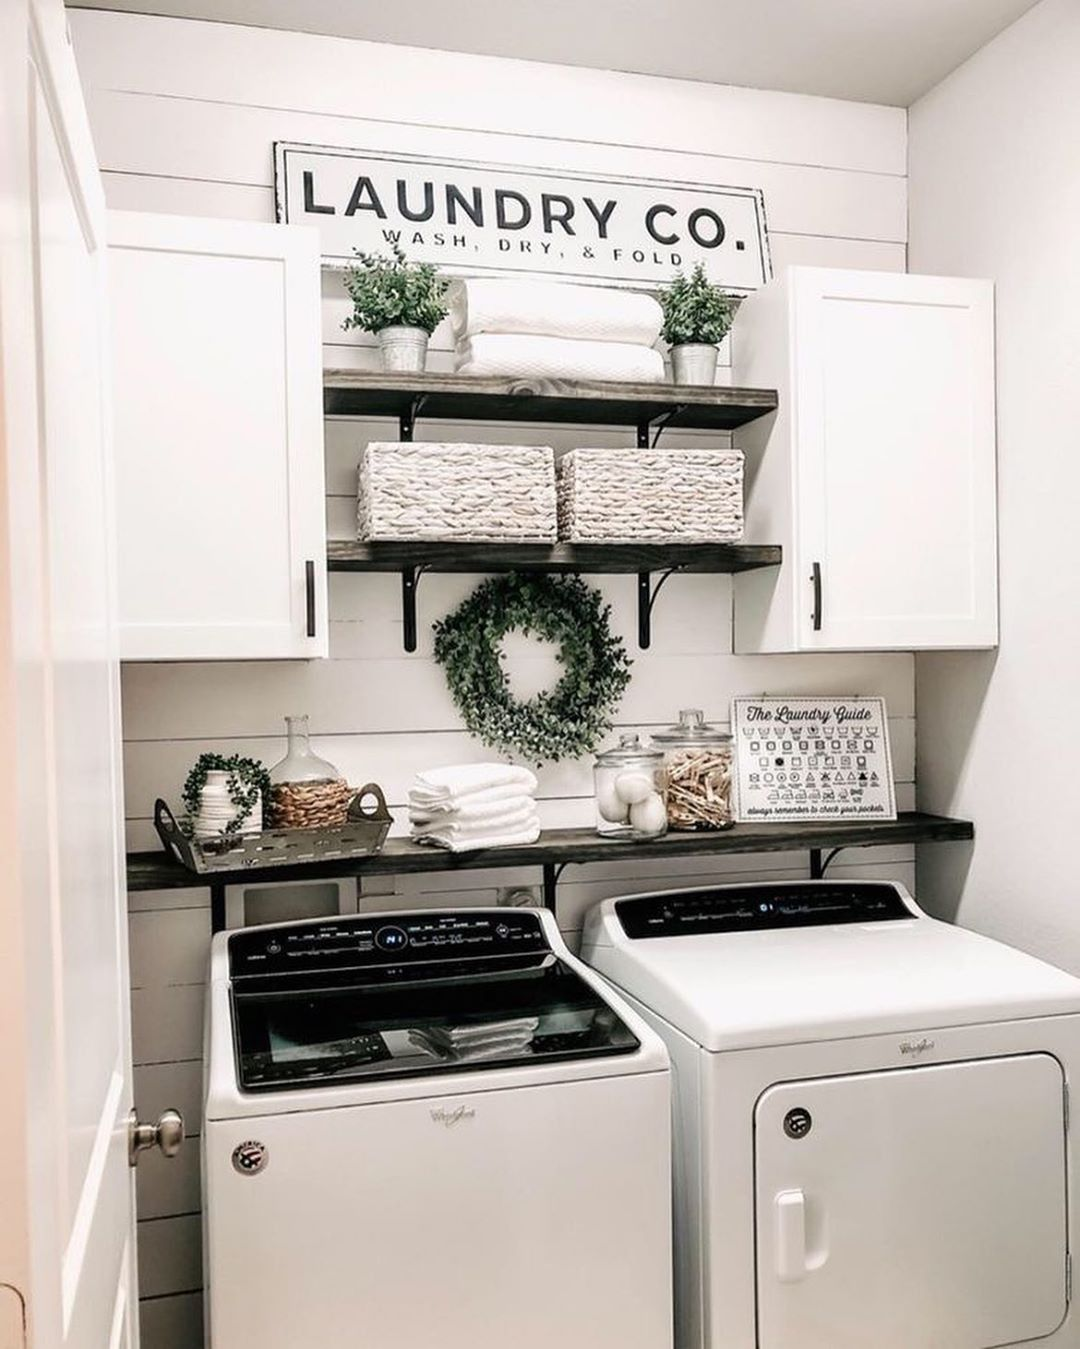 50 Clever Laundry Room Ideas That Are Practical And Space In 2020 Diy Laundry Room Signs Laundry Room Signs Laundry Room Remodel